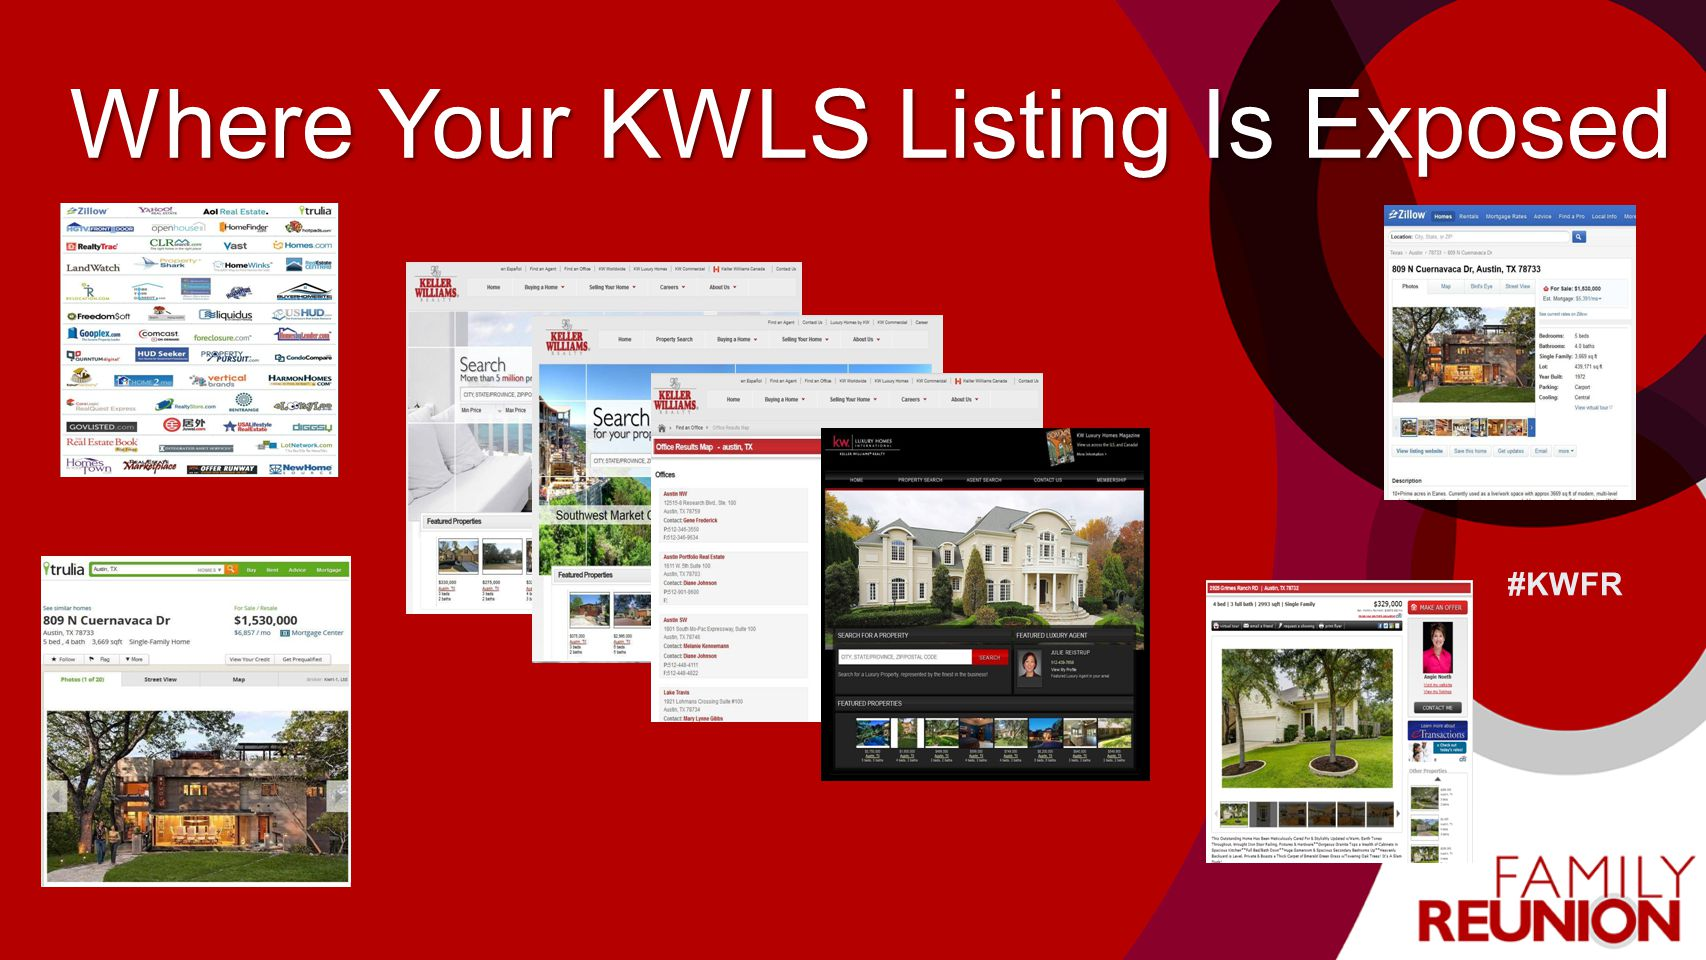 #KWFR Where Your KWLS Listing Is Exposed